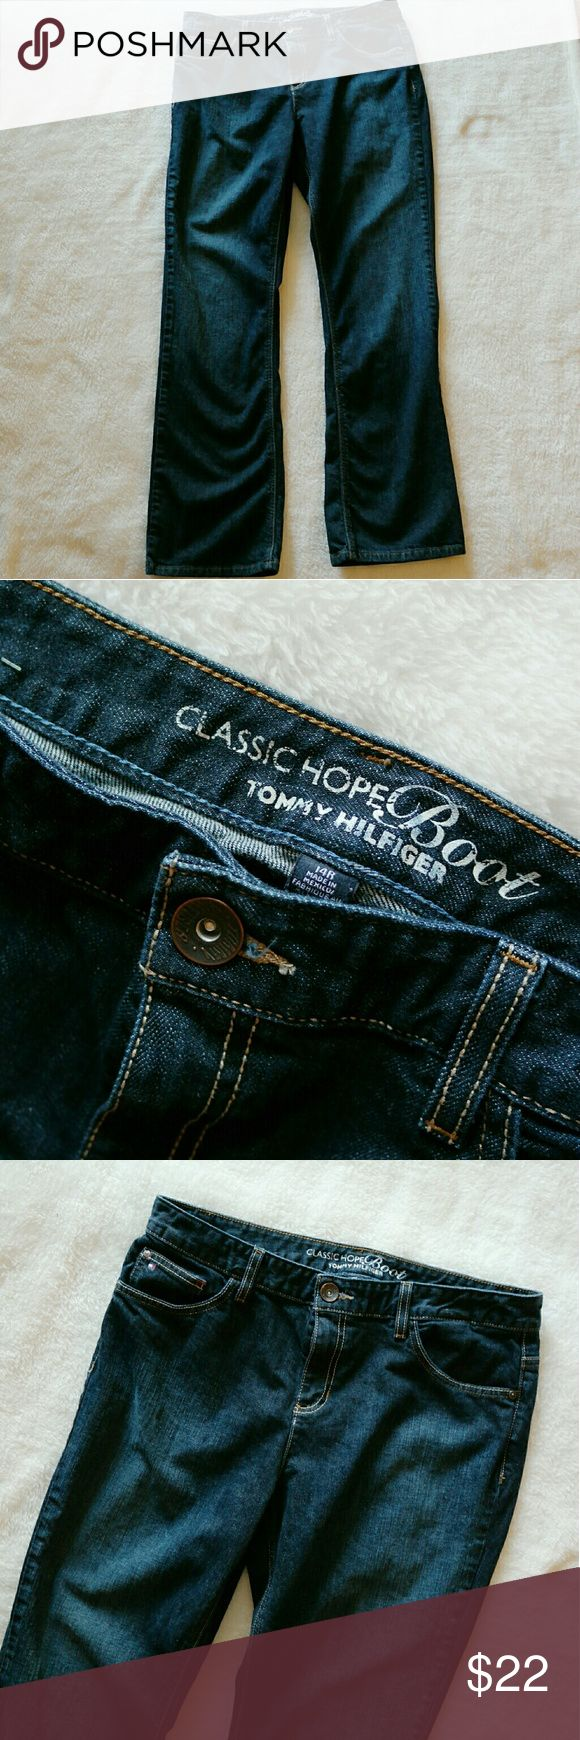 Tommy Hilfiger Boot Jeans Great Tommy Hilfiger jeans. In great condition. Size 14. Tommy Hilfiger Jeans Boot Cut